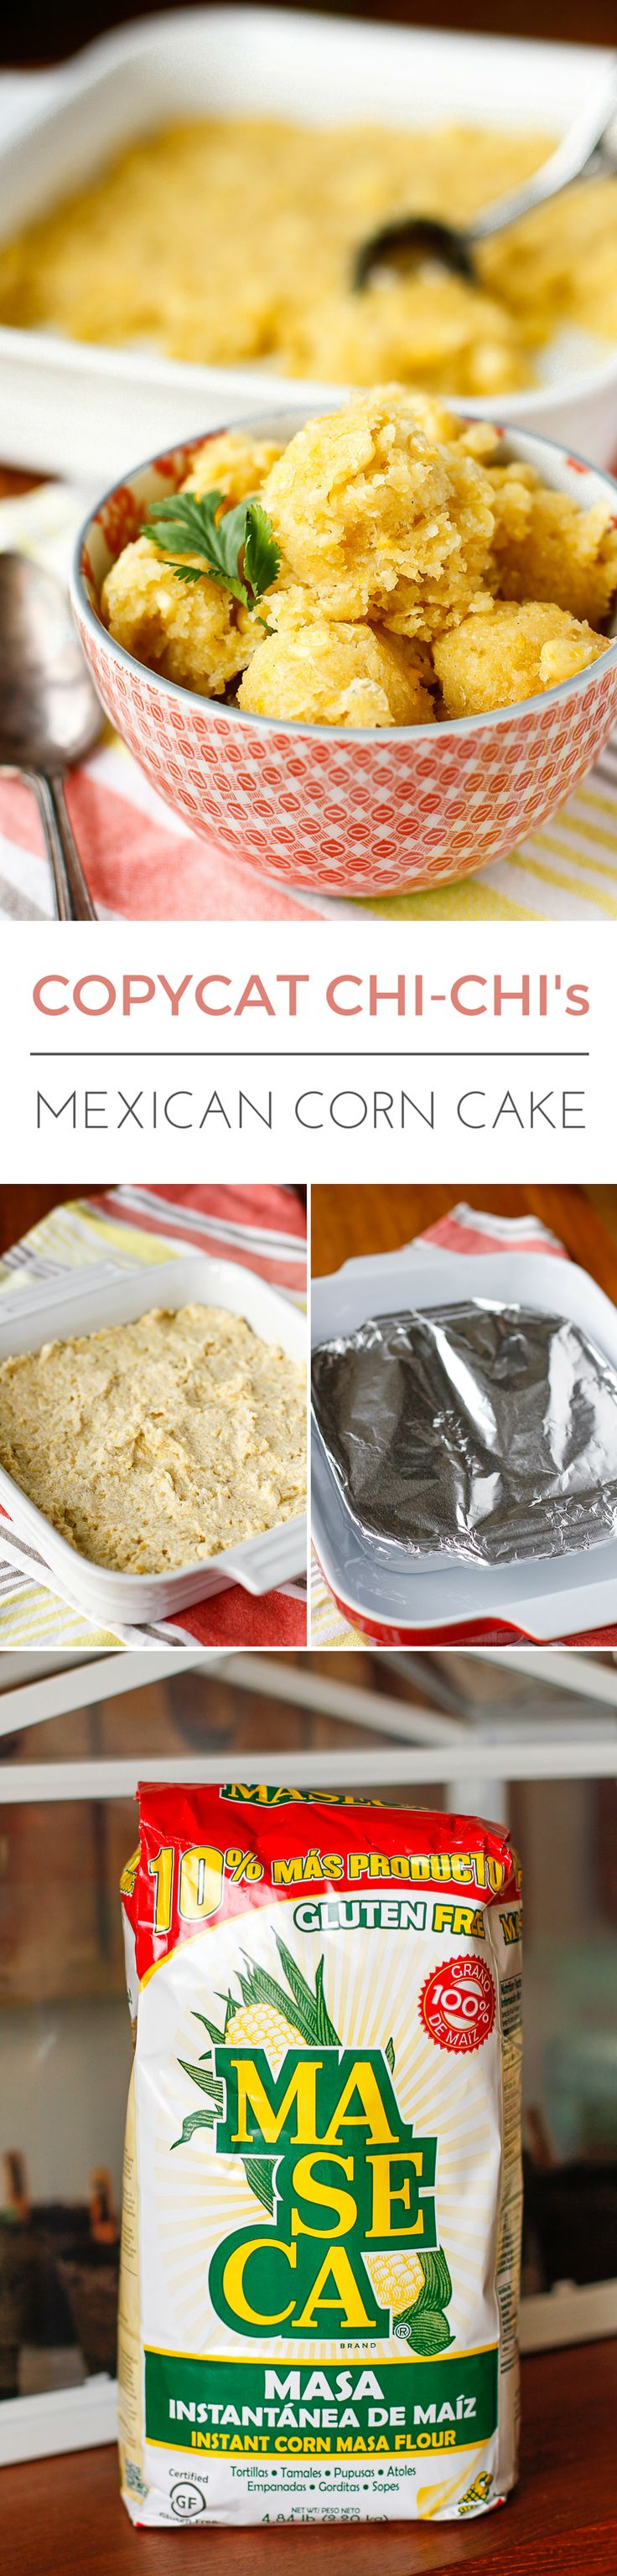 Copycat Chi-Chi's Mexican Sweet Corn Cake -- this delicious sweet corn cake is a copycat of the yummy side that used to be served at Chi-Chi's! | via @unsophisticook on unsophisticook.com